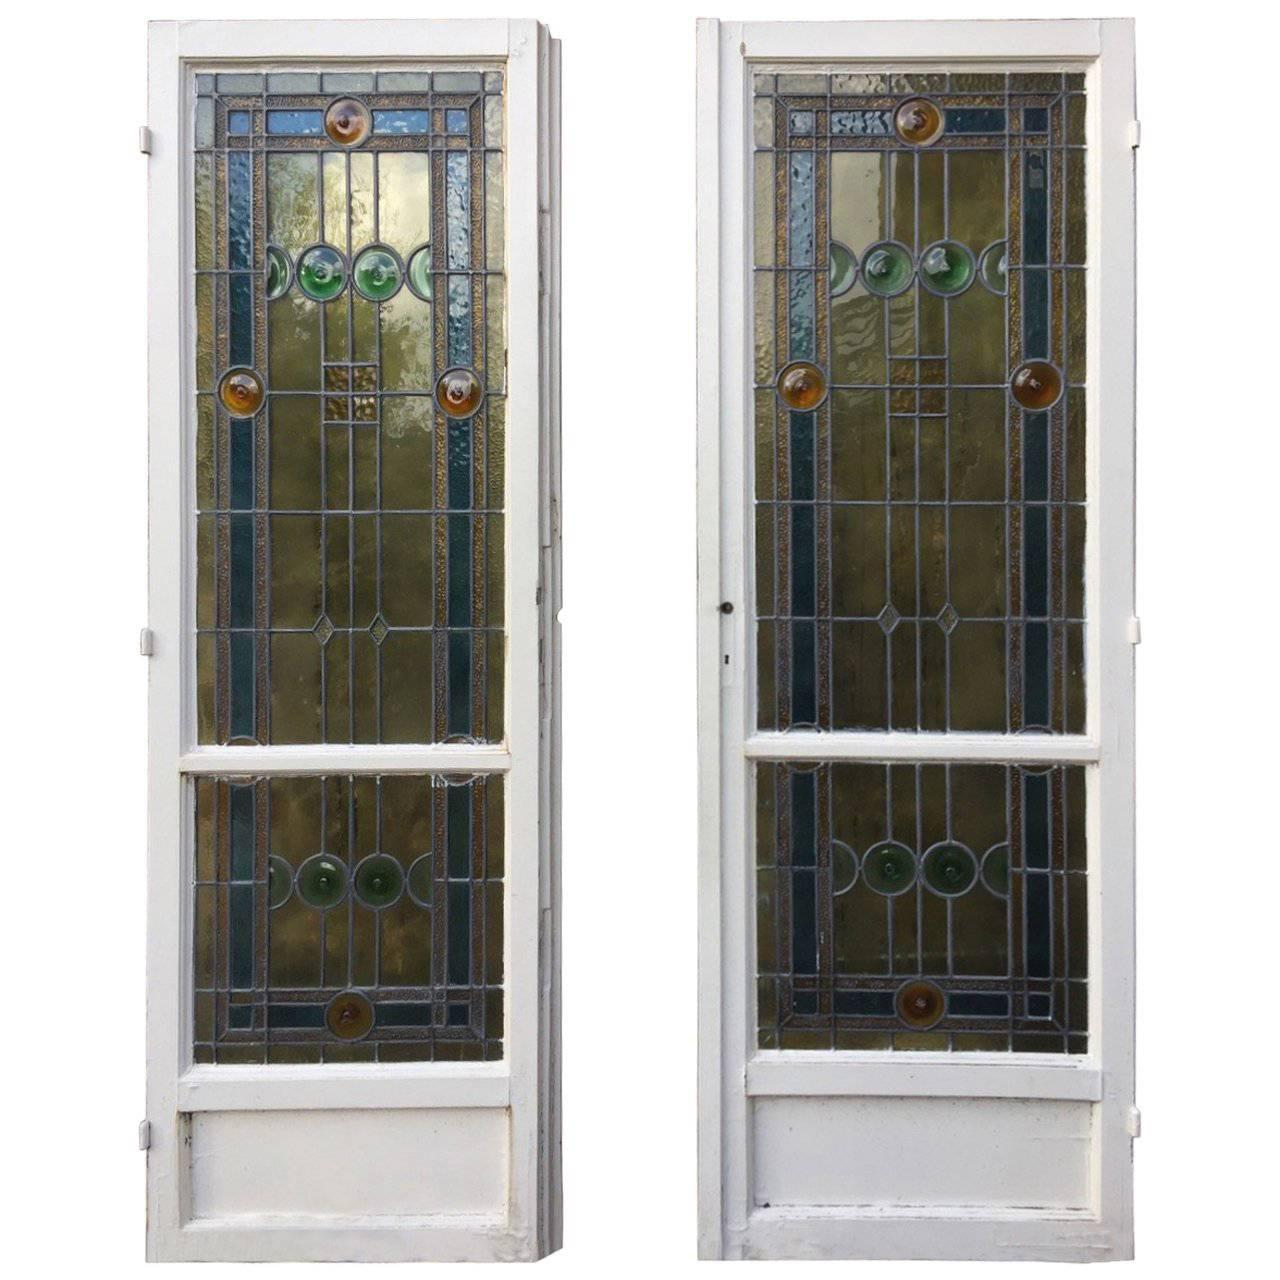 Charming French Art Deco Stained Glass Doors and Windows Set  sc 1 st  1stDibs & Antique doors and gates For Sale in France - 1stdibs